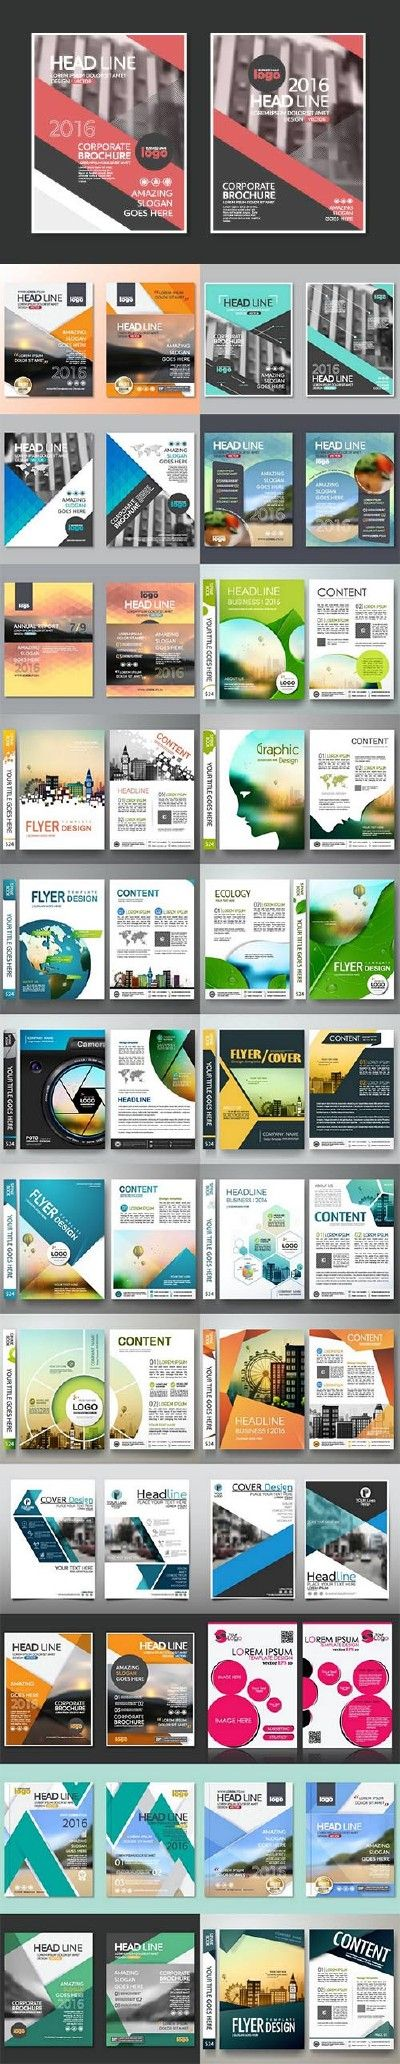 Business cover flyers brochure design 26